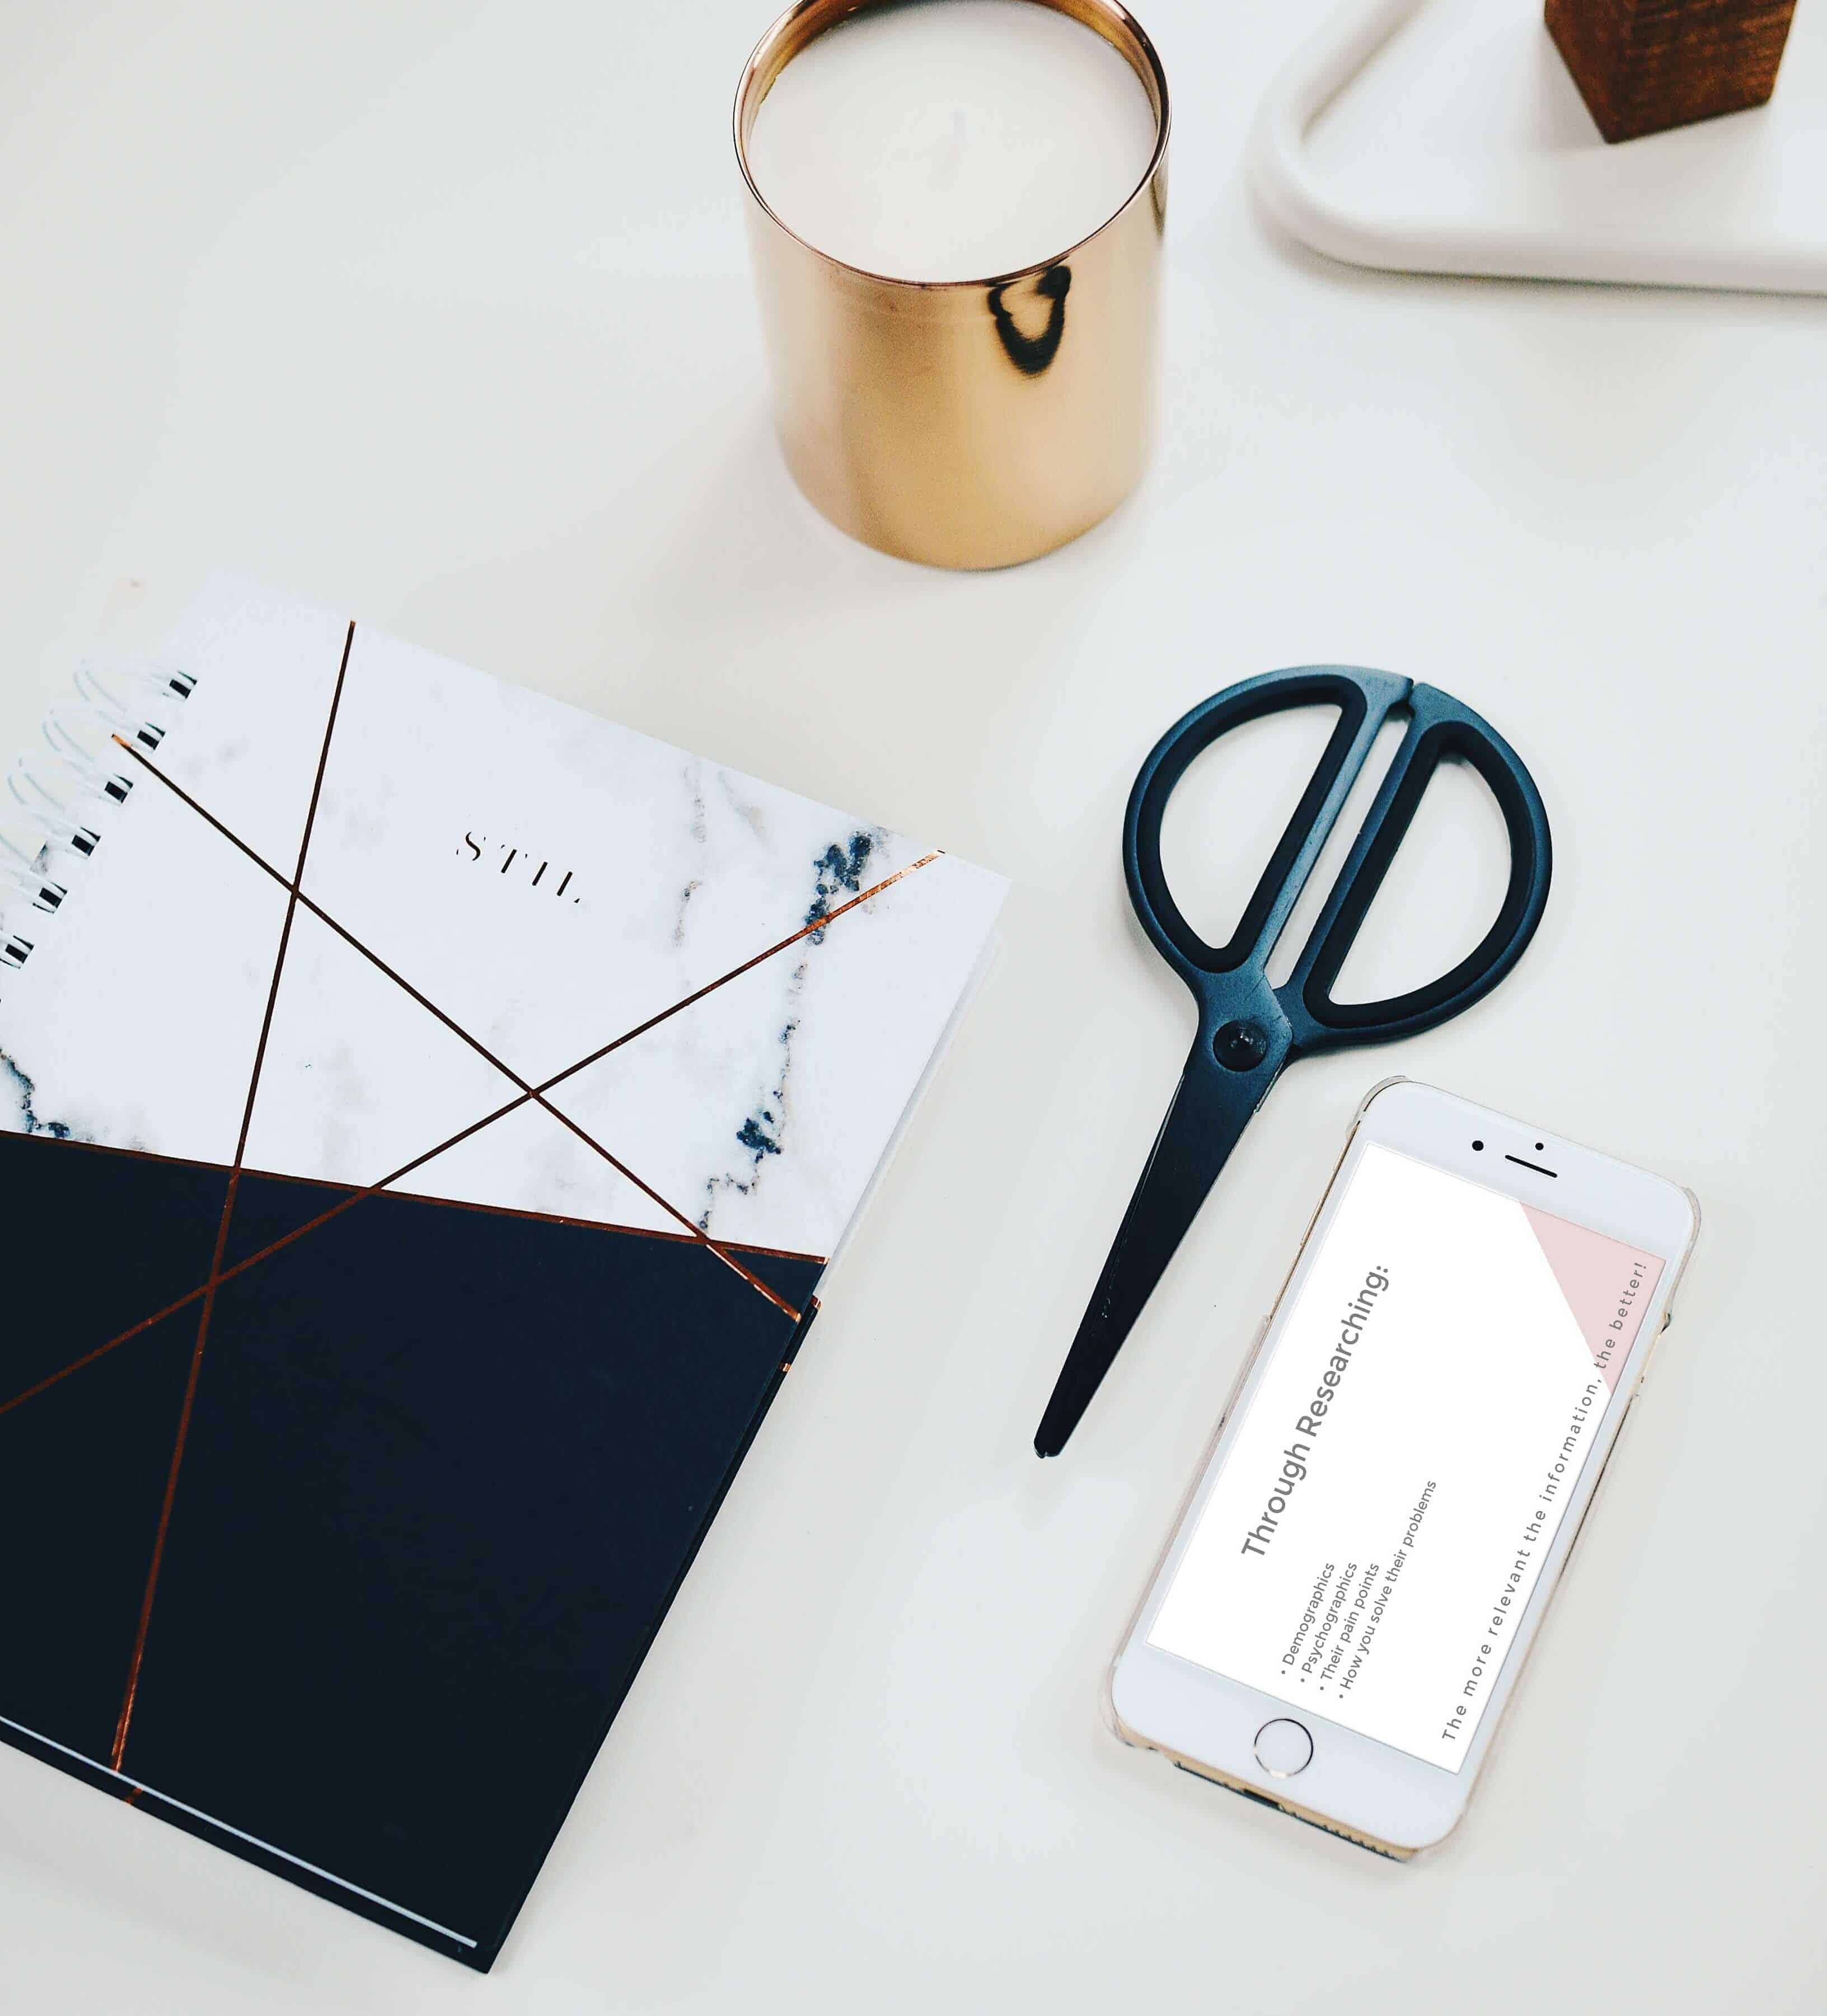 Styled photo of candle, notebook, scissors and iPhone on a desk